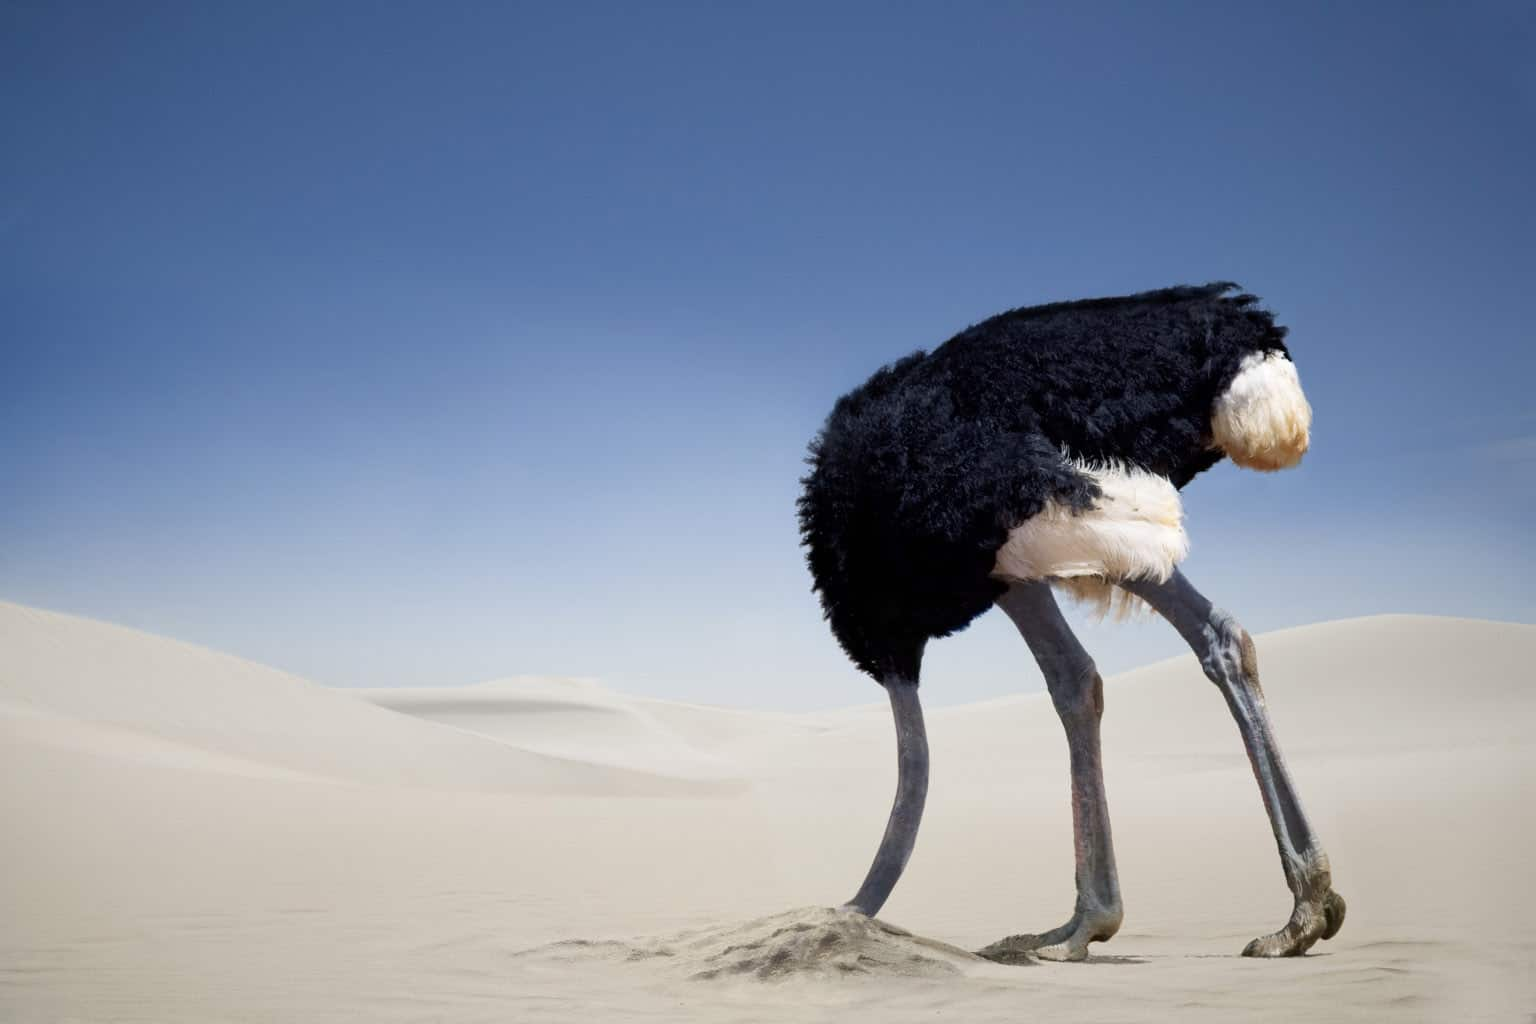 Ostriches Put Their Head In The Sand – science myth